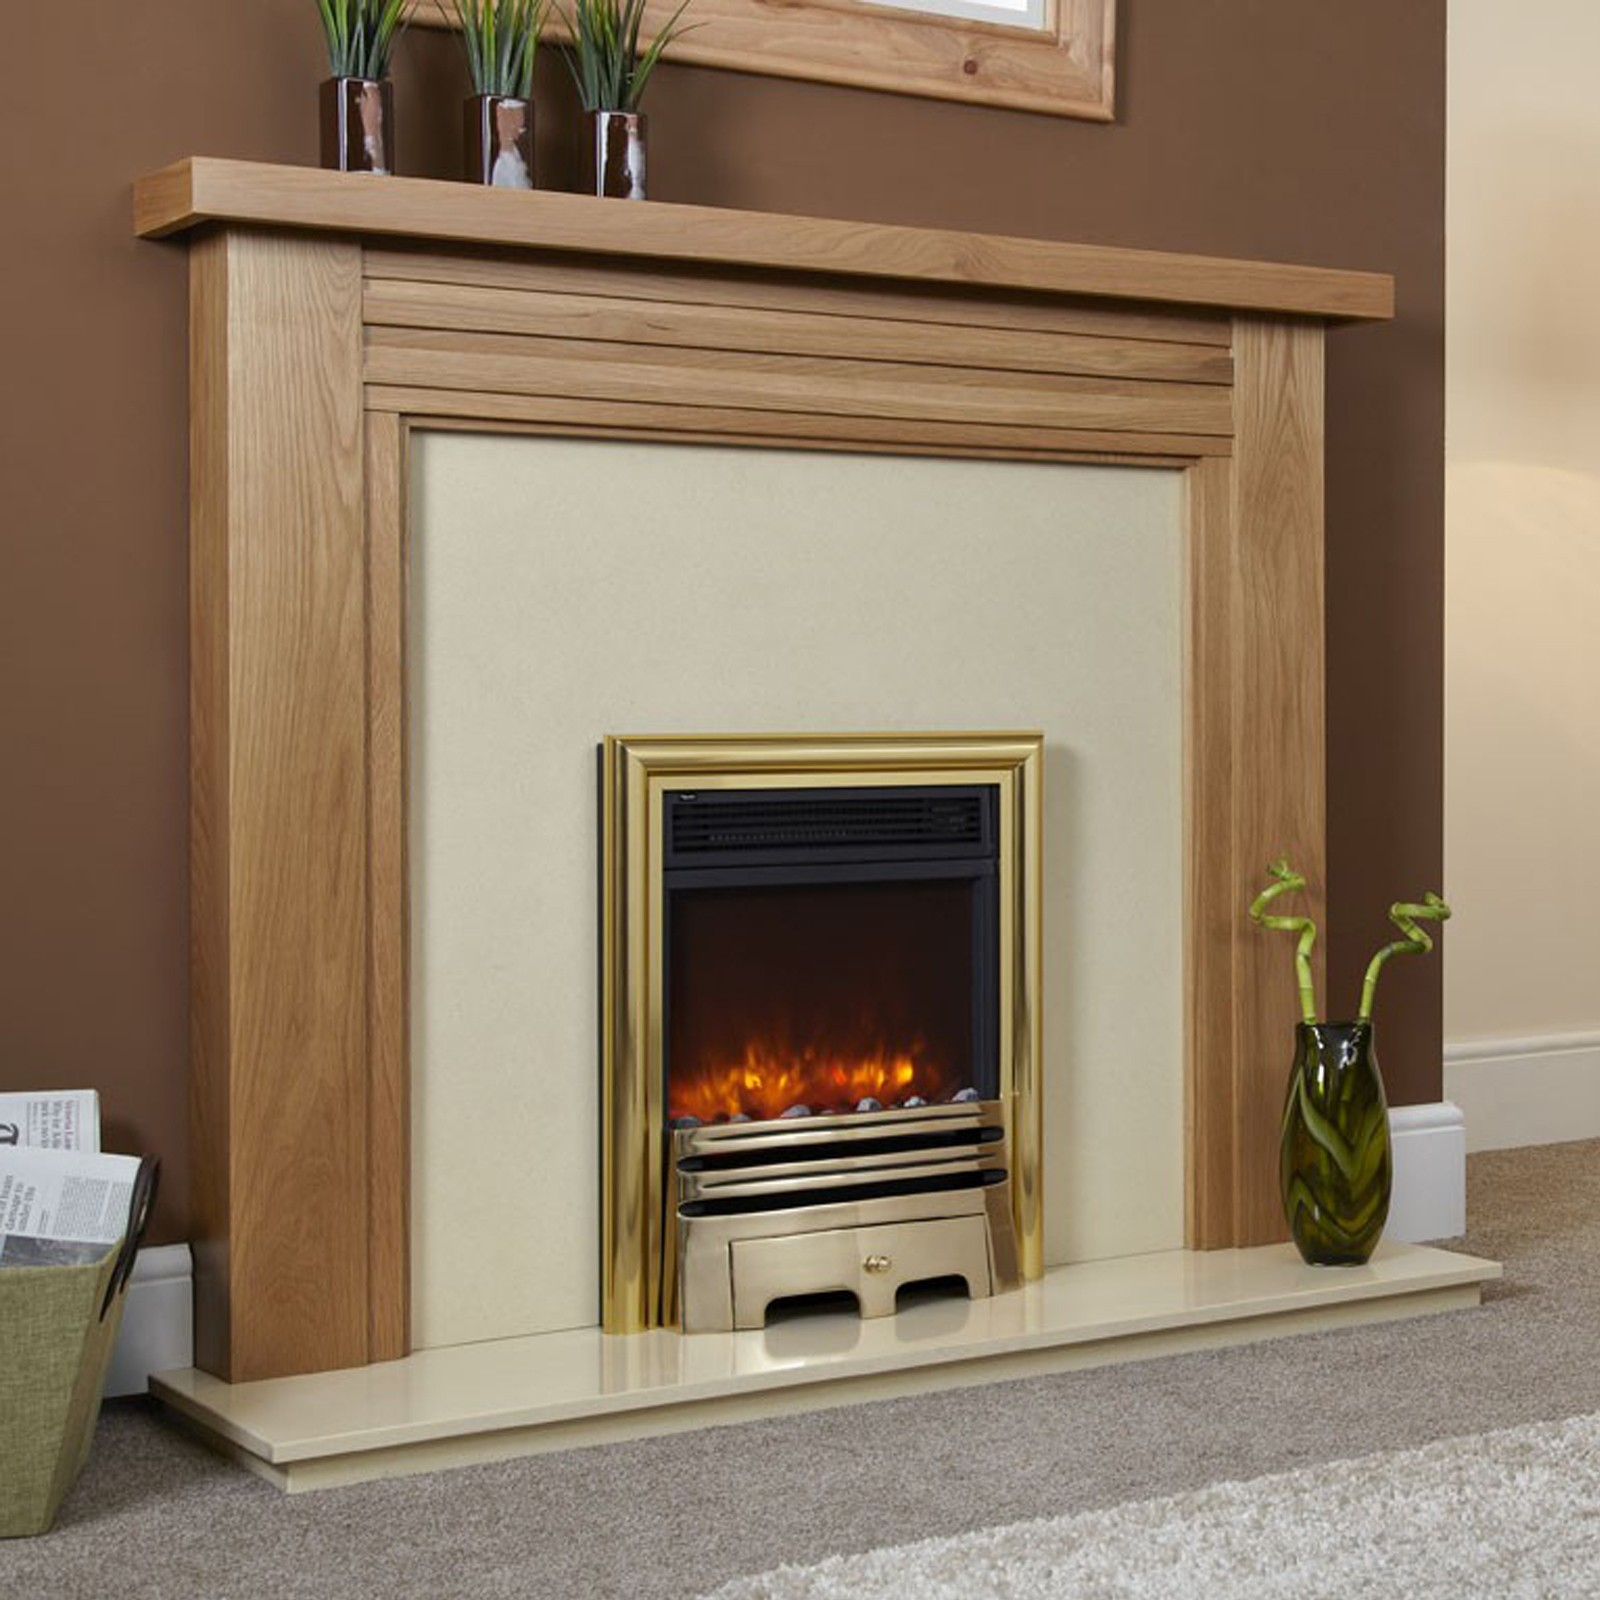 Fireplace electric with flame effect 3d